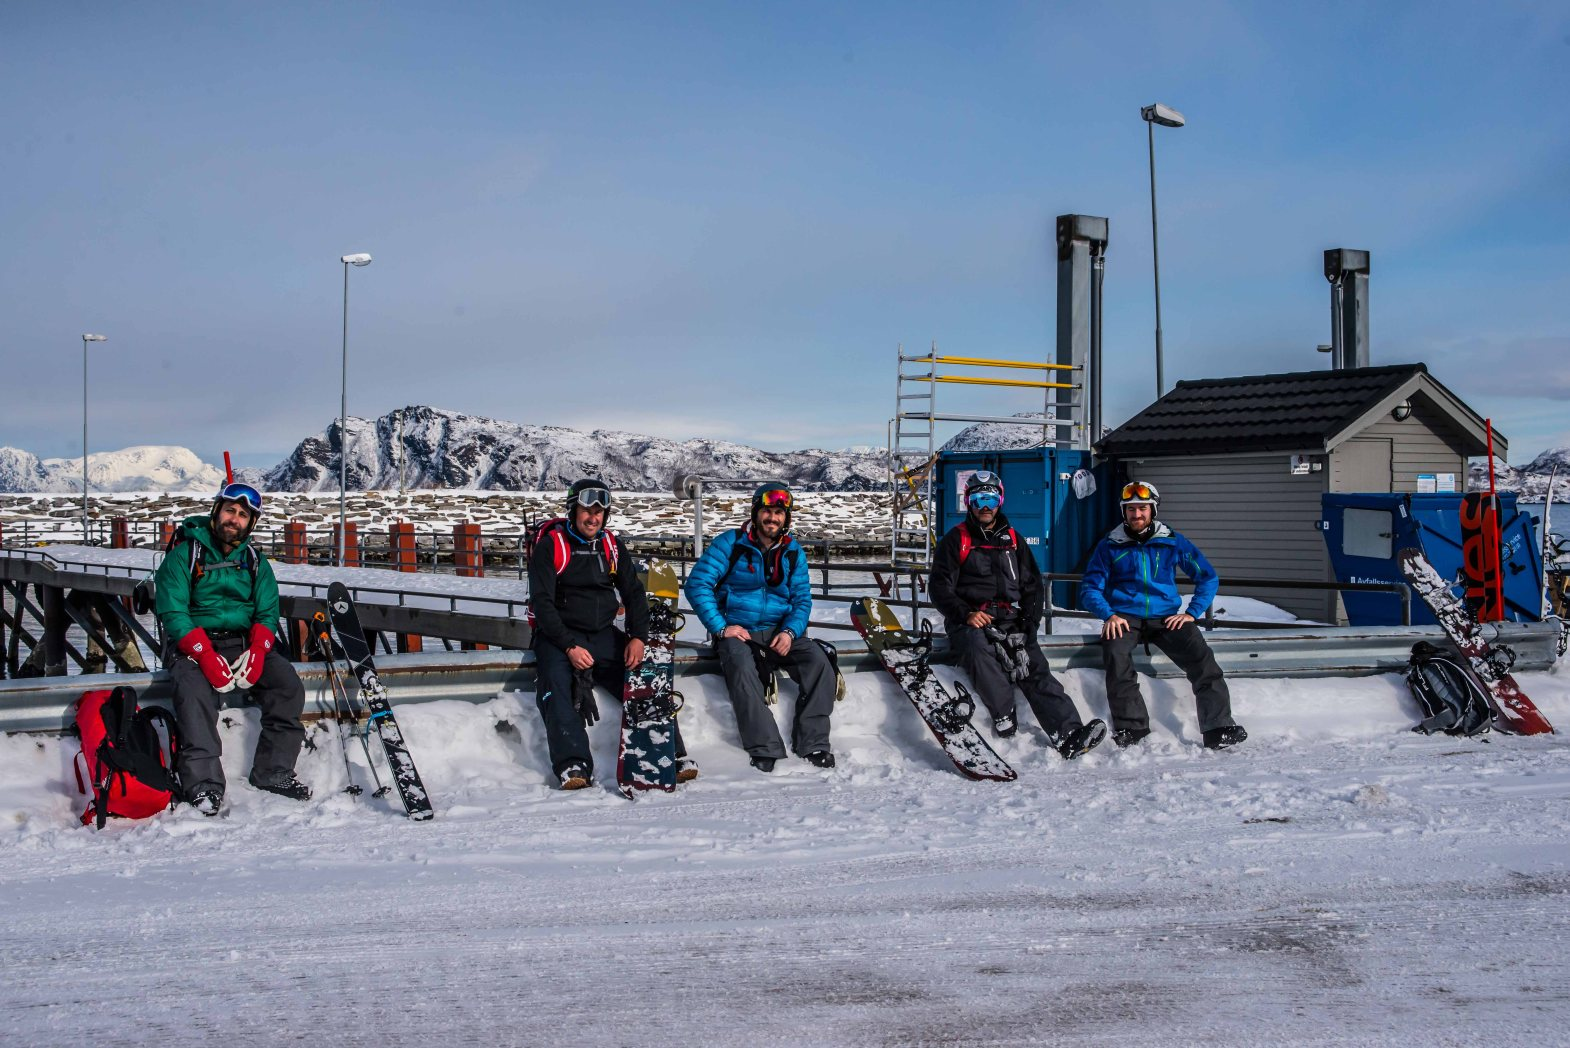 Splitboarders sitting on guard rail at the dock after a good day of freeride in Lyngen.